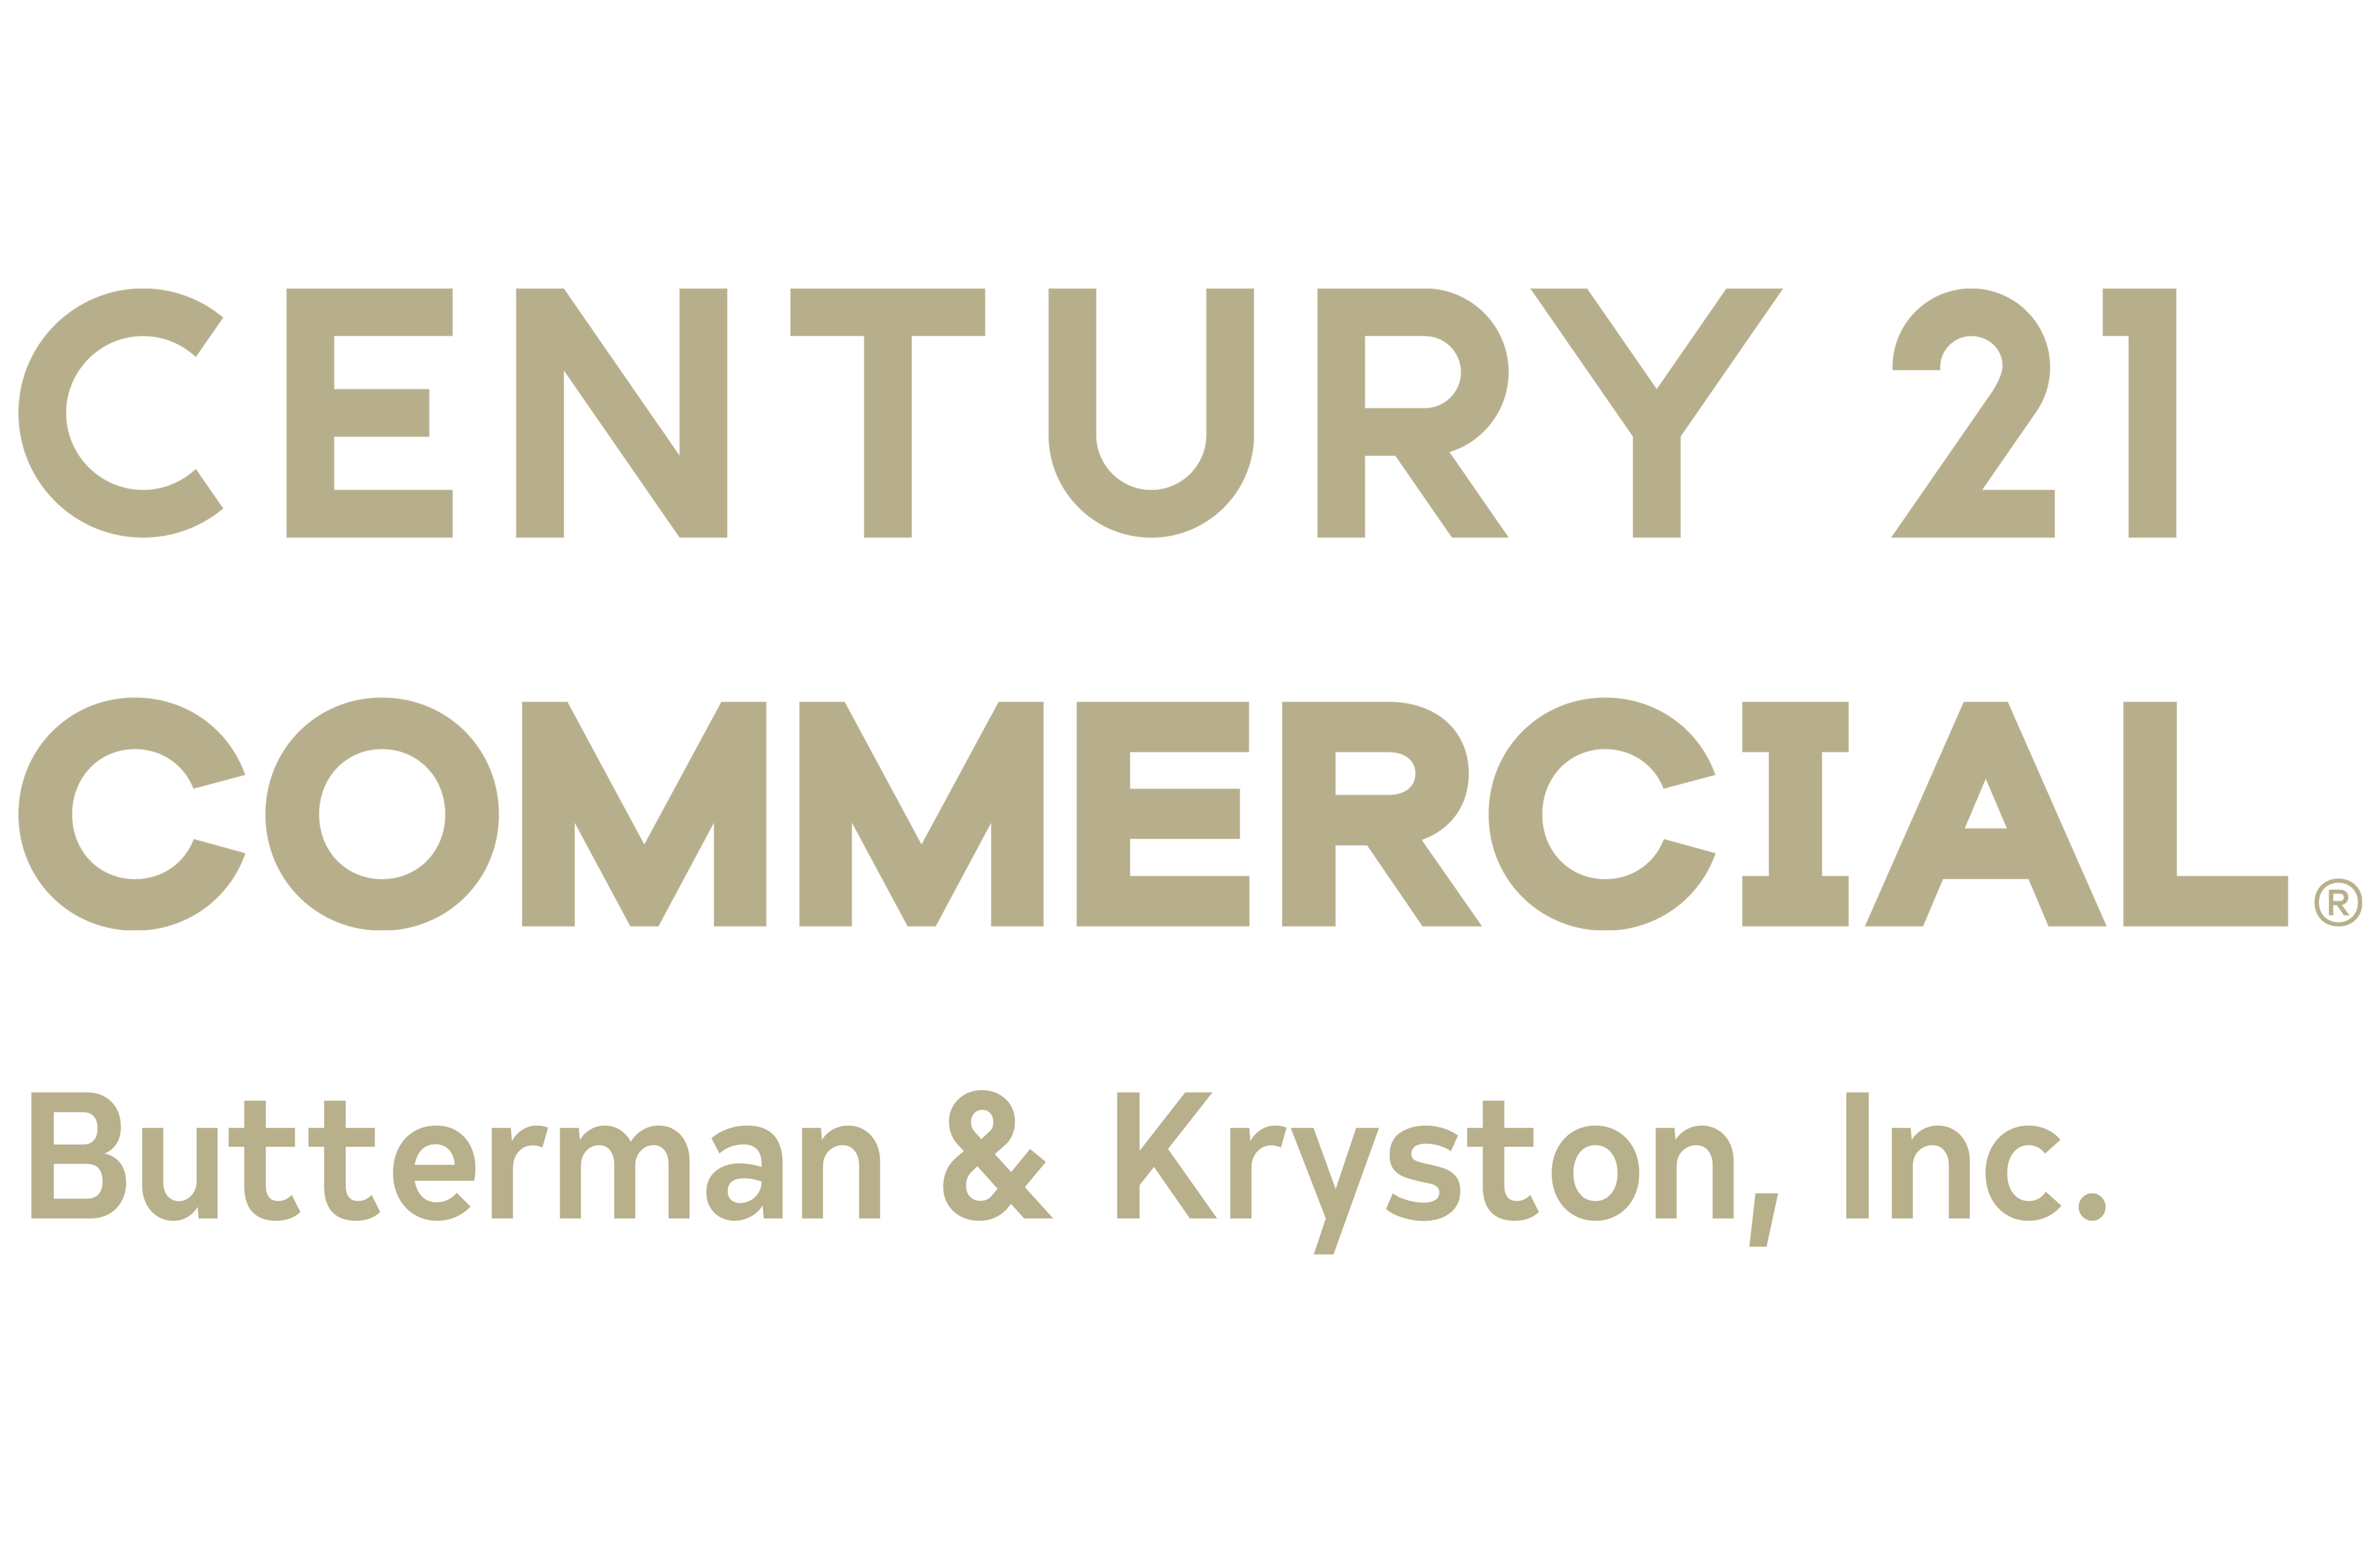 Doreen Peirce of CENTURY 21 Butterman & Kryston, Inc. logo